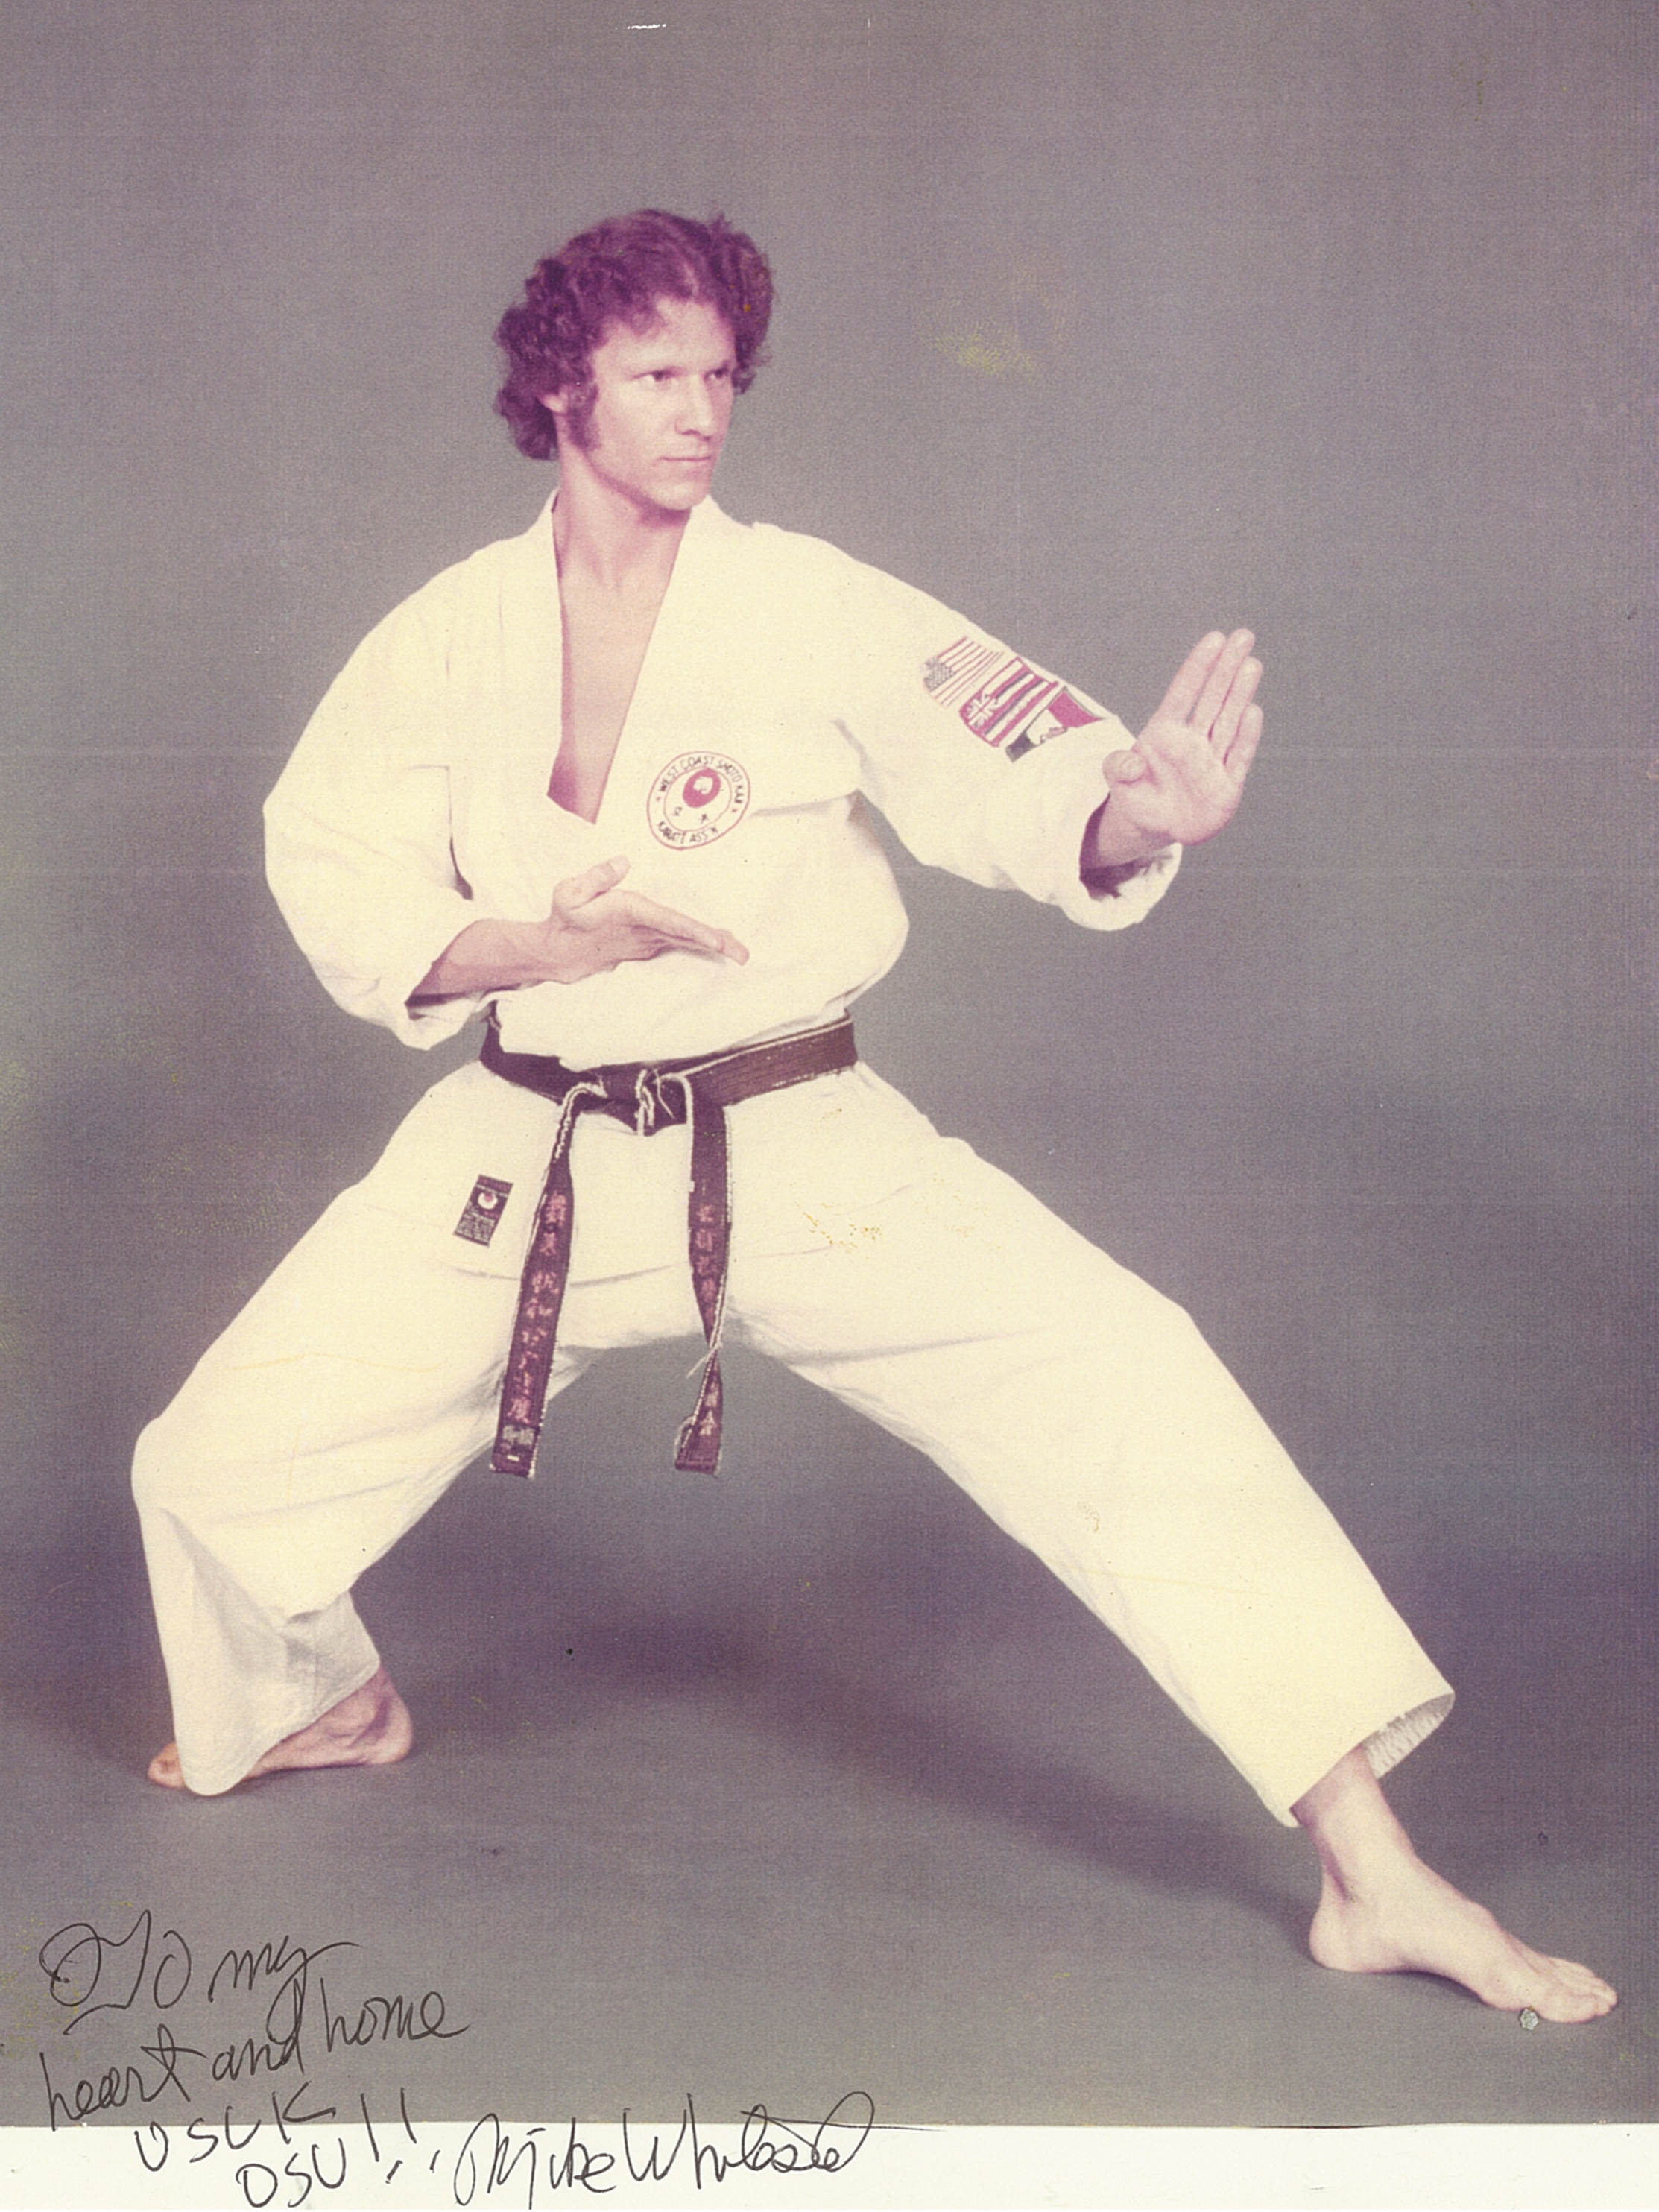 Sensei Mike Whiteside Long back stance.jpg